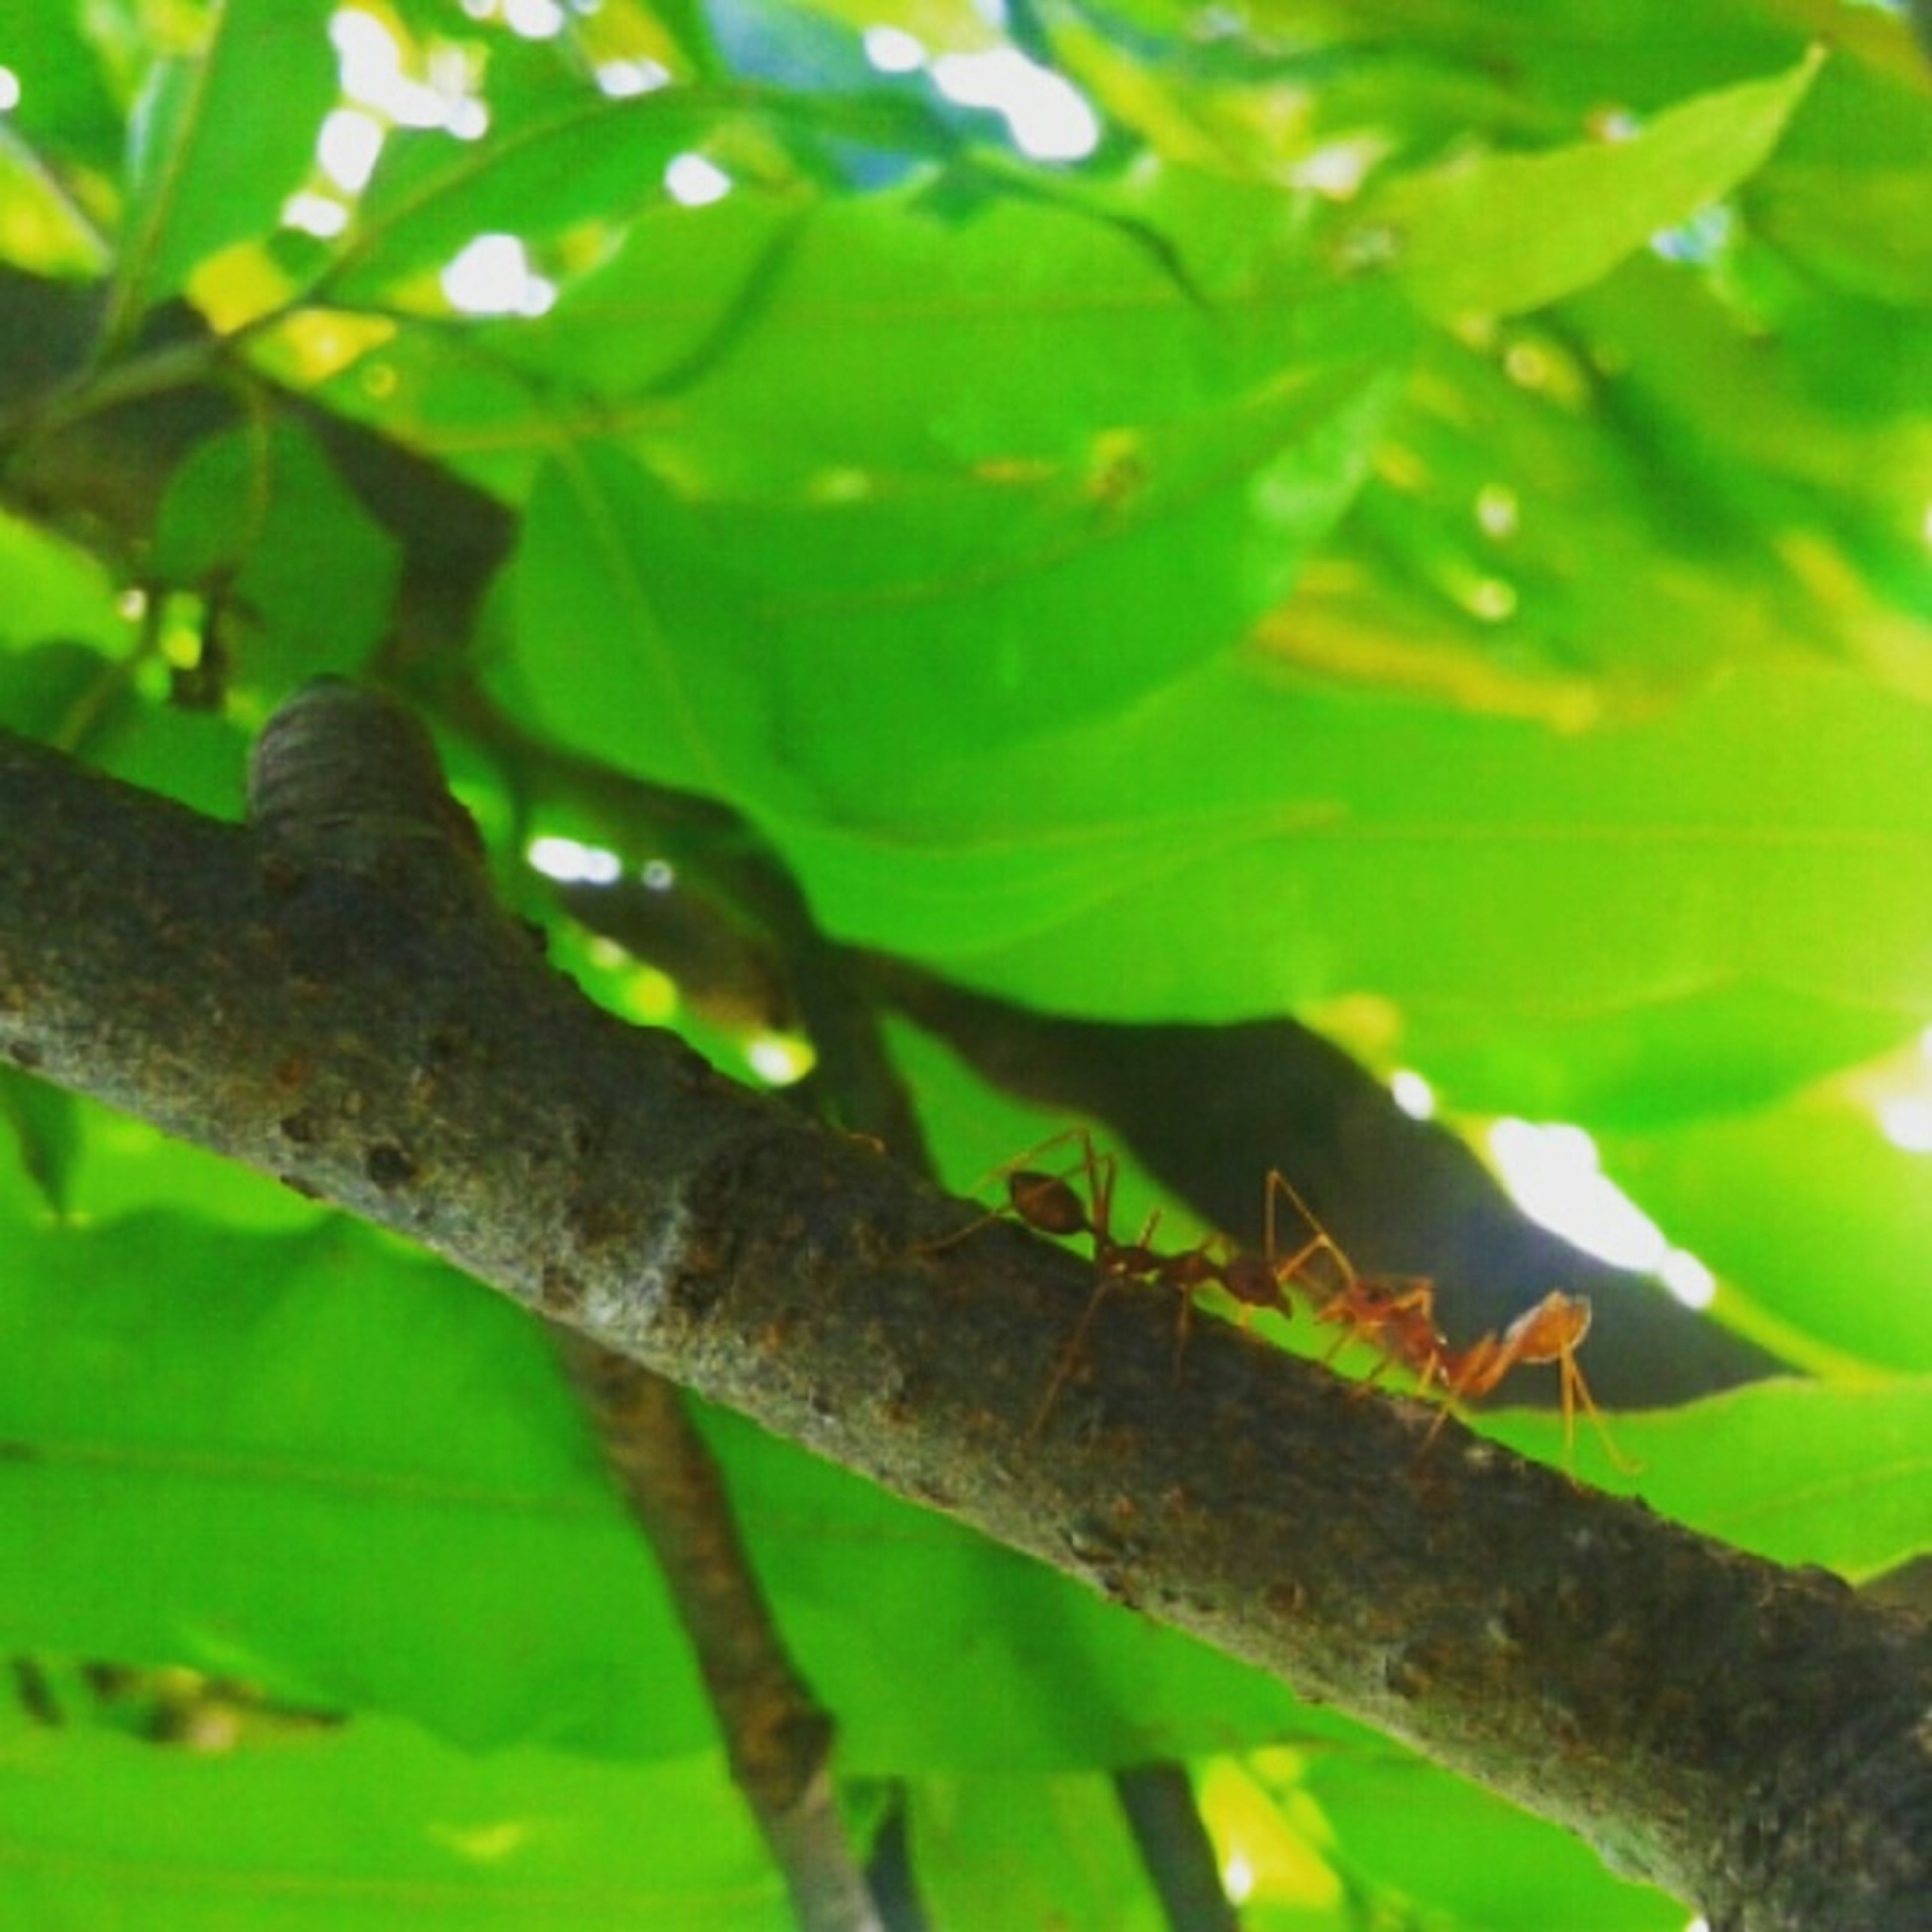 animal themes, animals in the wild, one animal, wildlife, leaf, green color, insect, close-up, nature, focus on foreground, plant, branch, growth, selective focus, outdoors, day, no people, perching, tree, zoology